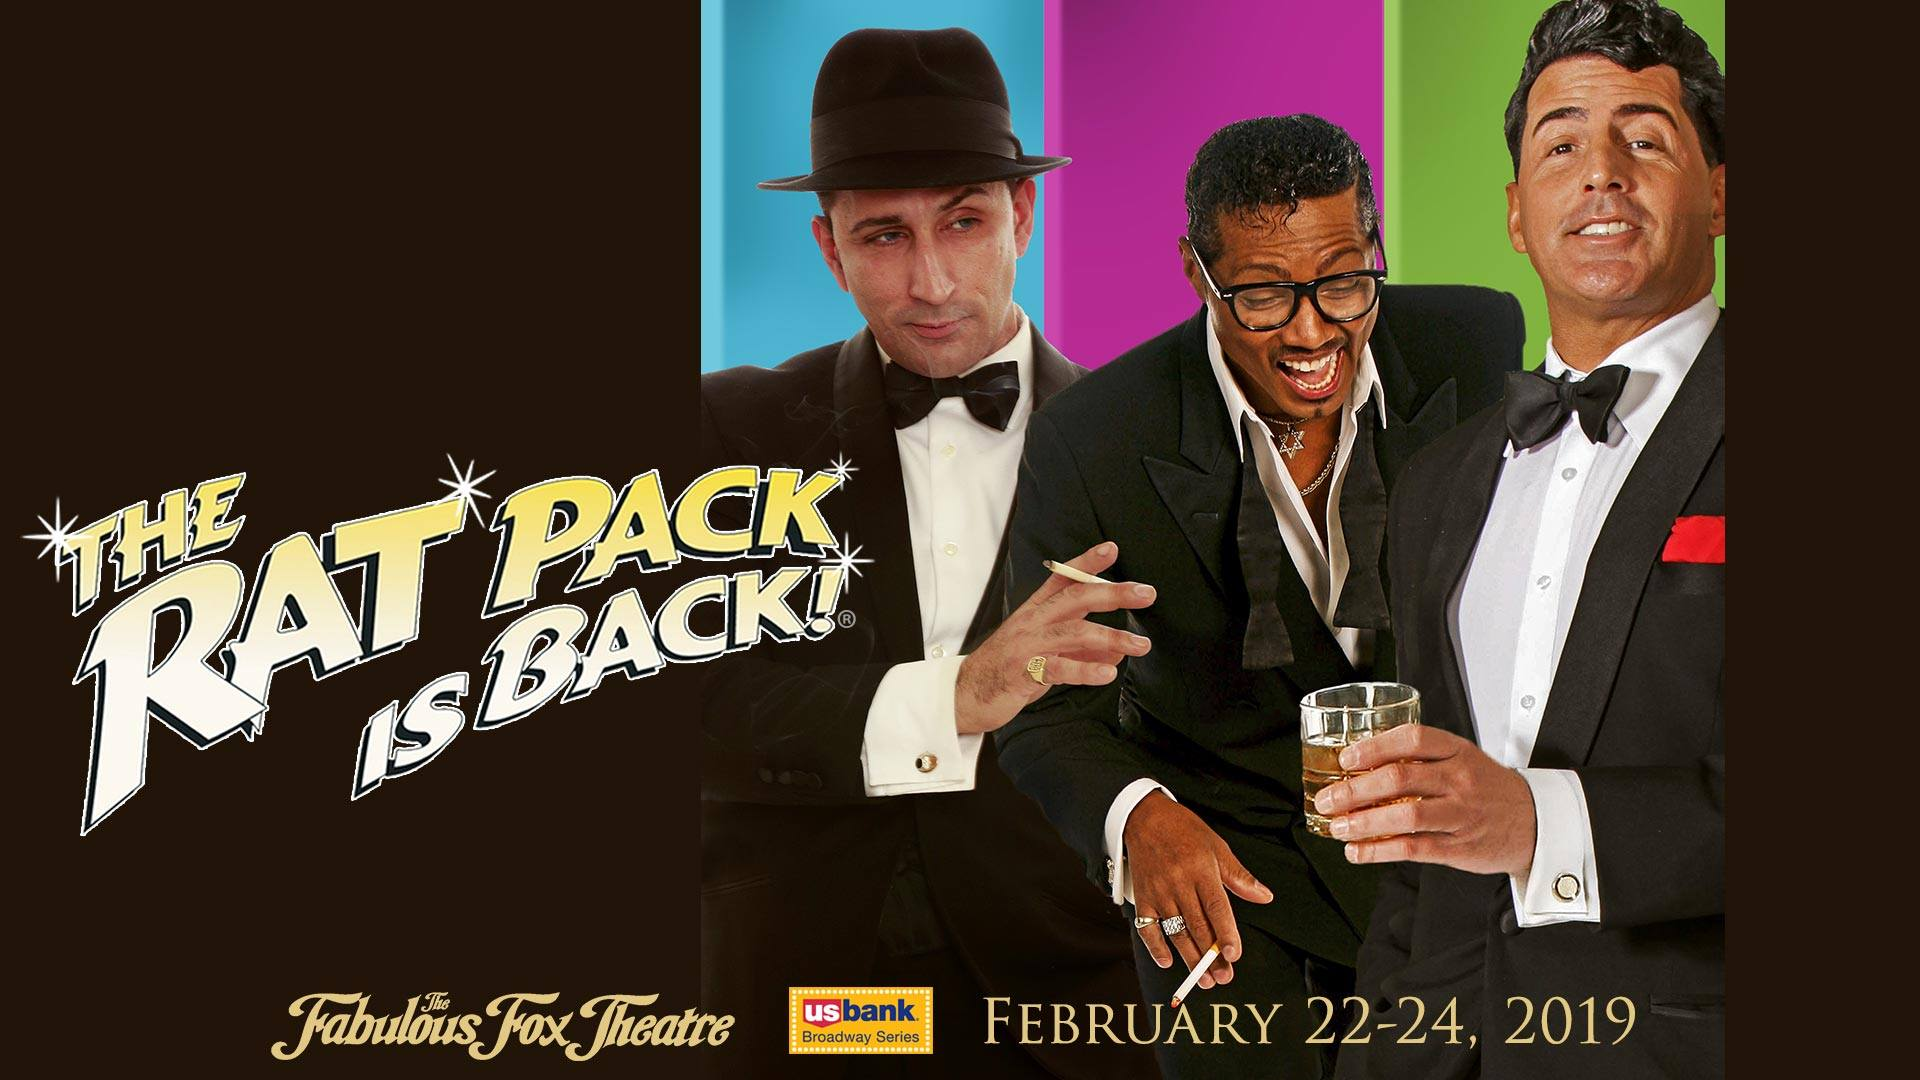 Frank Sinatra, Sammy Davis, Jr. and Dean Martin impersonators in The Rat Pack Is Back.